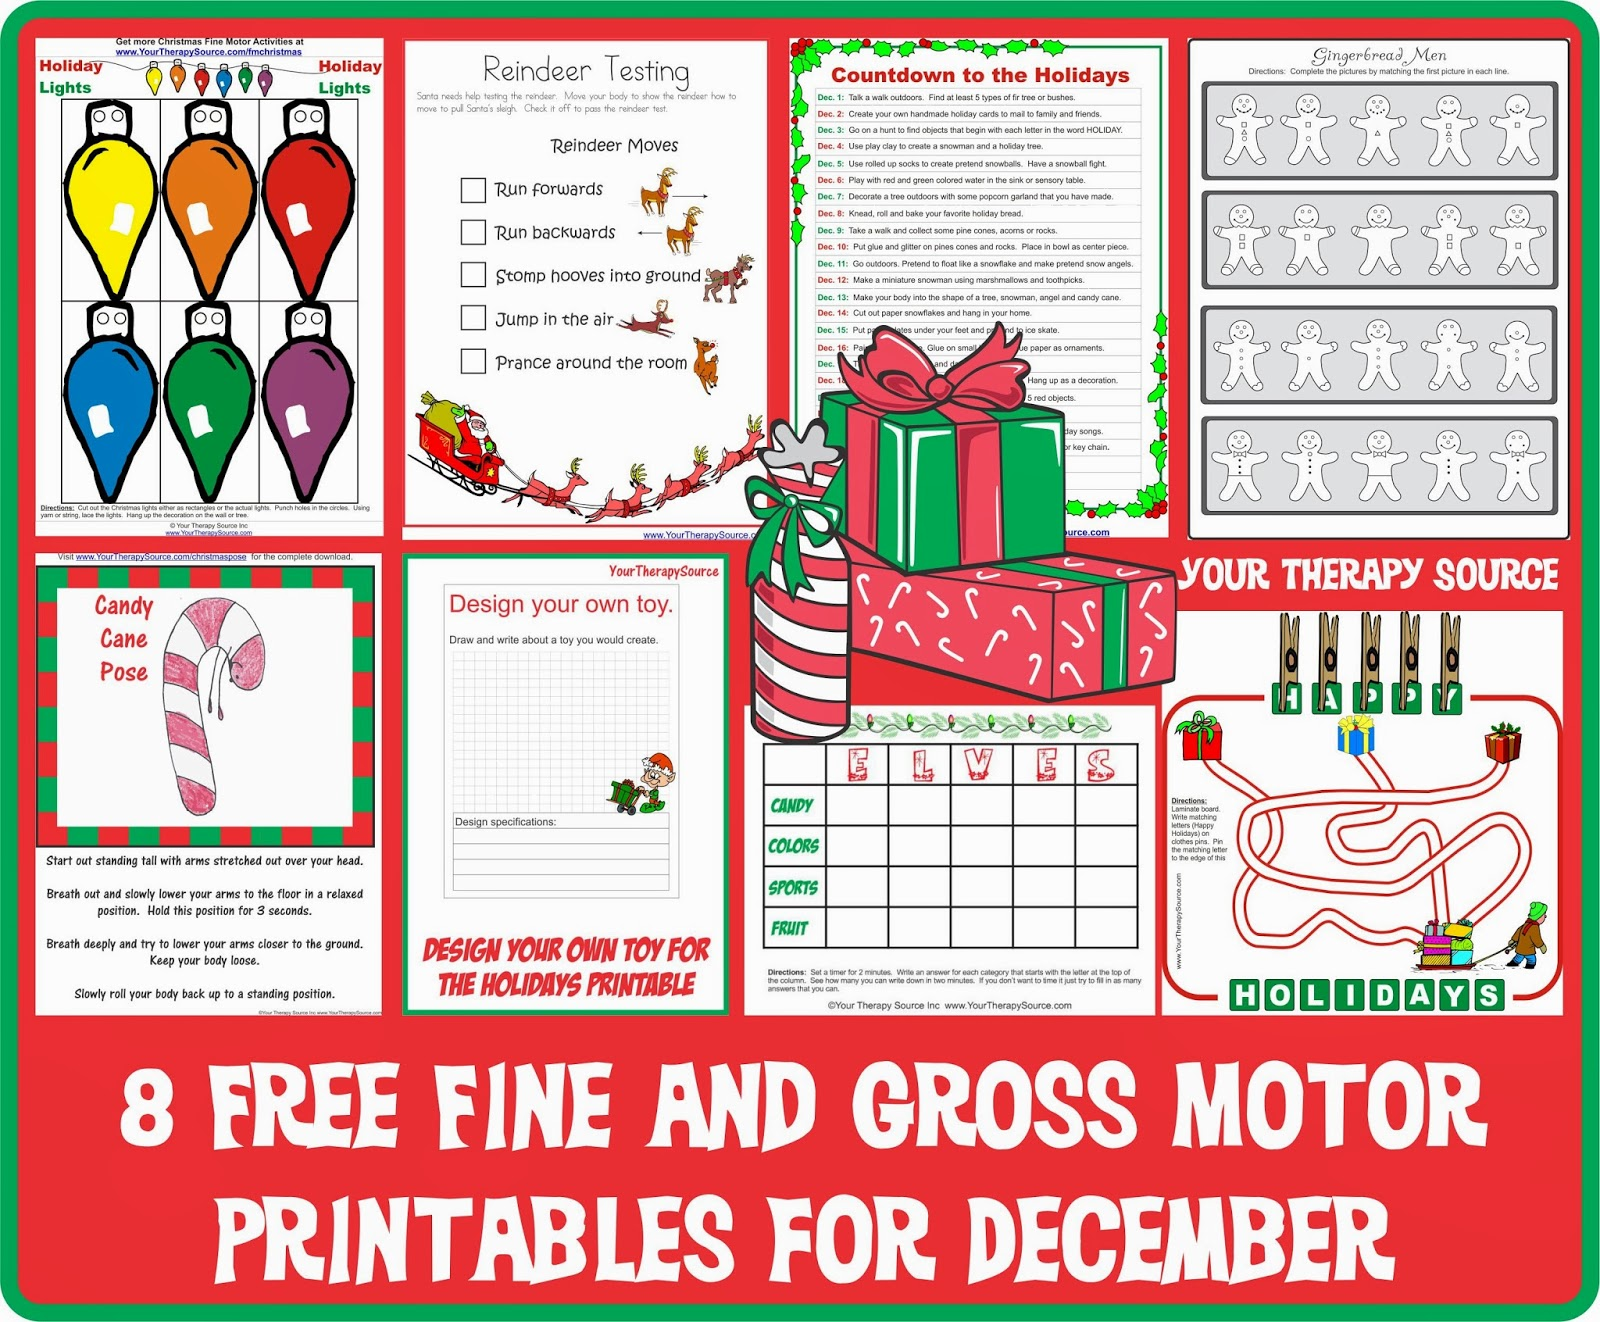 8 free printable fine and gross motor activities for december your therapy source. Black Bedroom Furniture Sets. Home Design Ideas